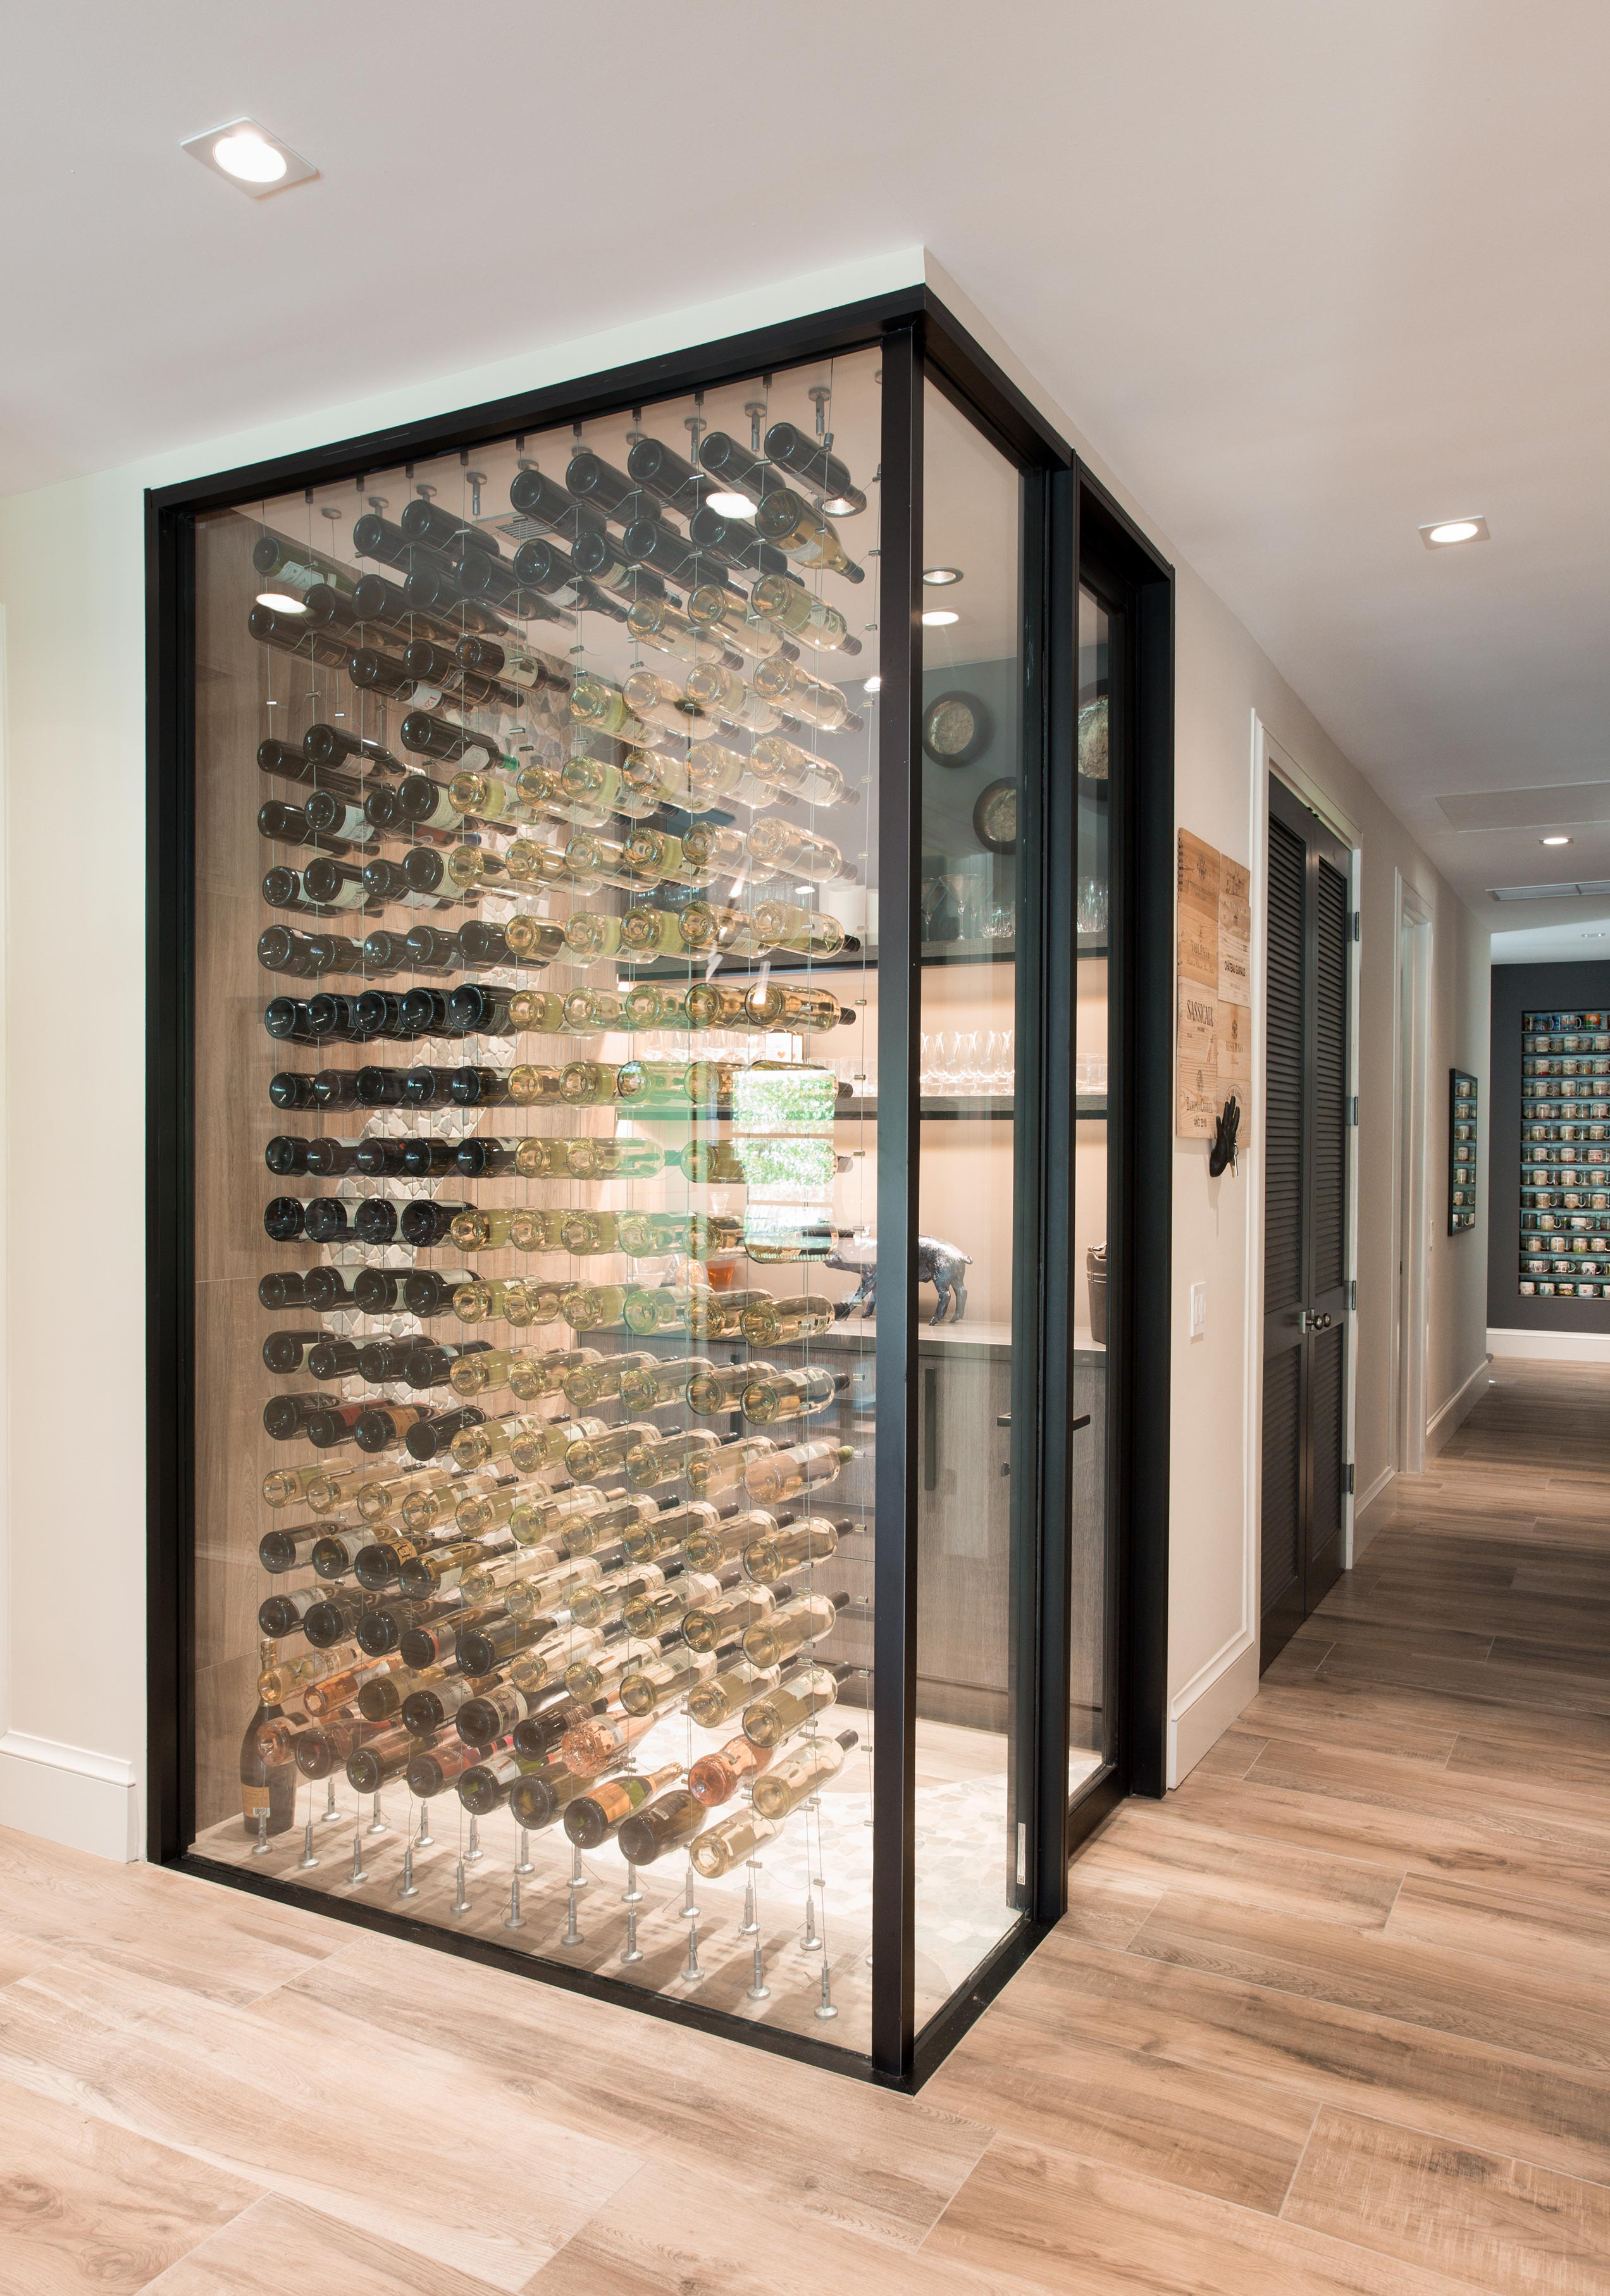 The glass-encased wine cellar is temperature-controlled at 57 degrees.